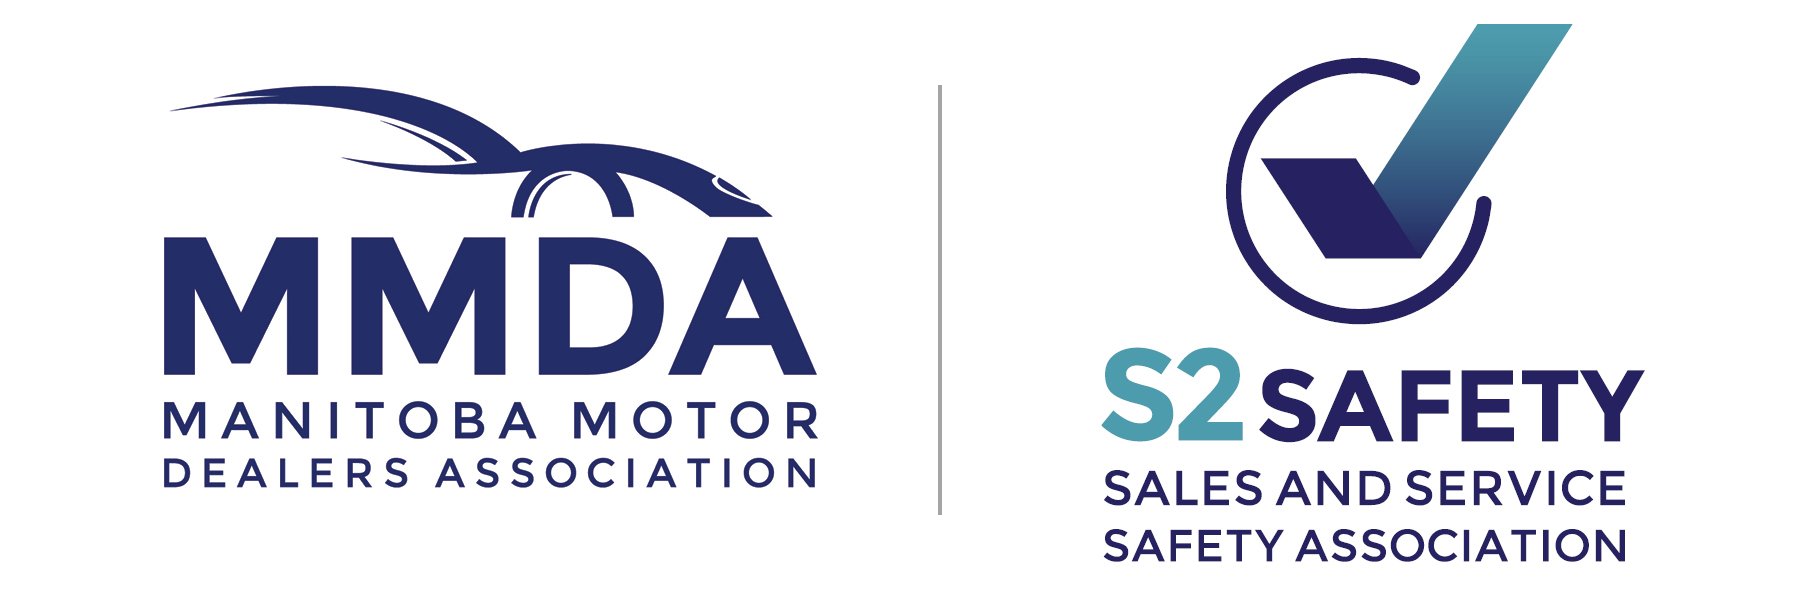 Manitoba Motor Dealers Association – S2 Safety